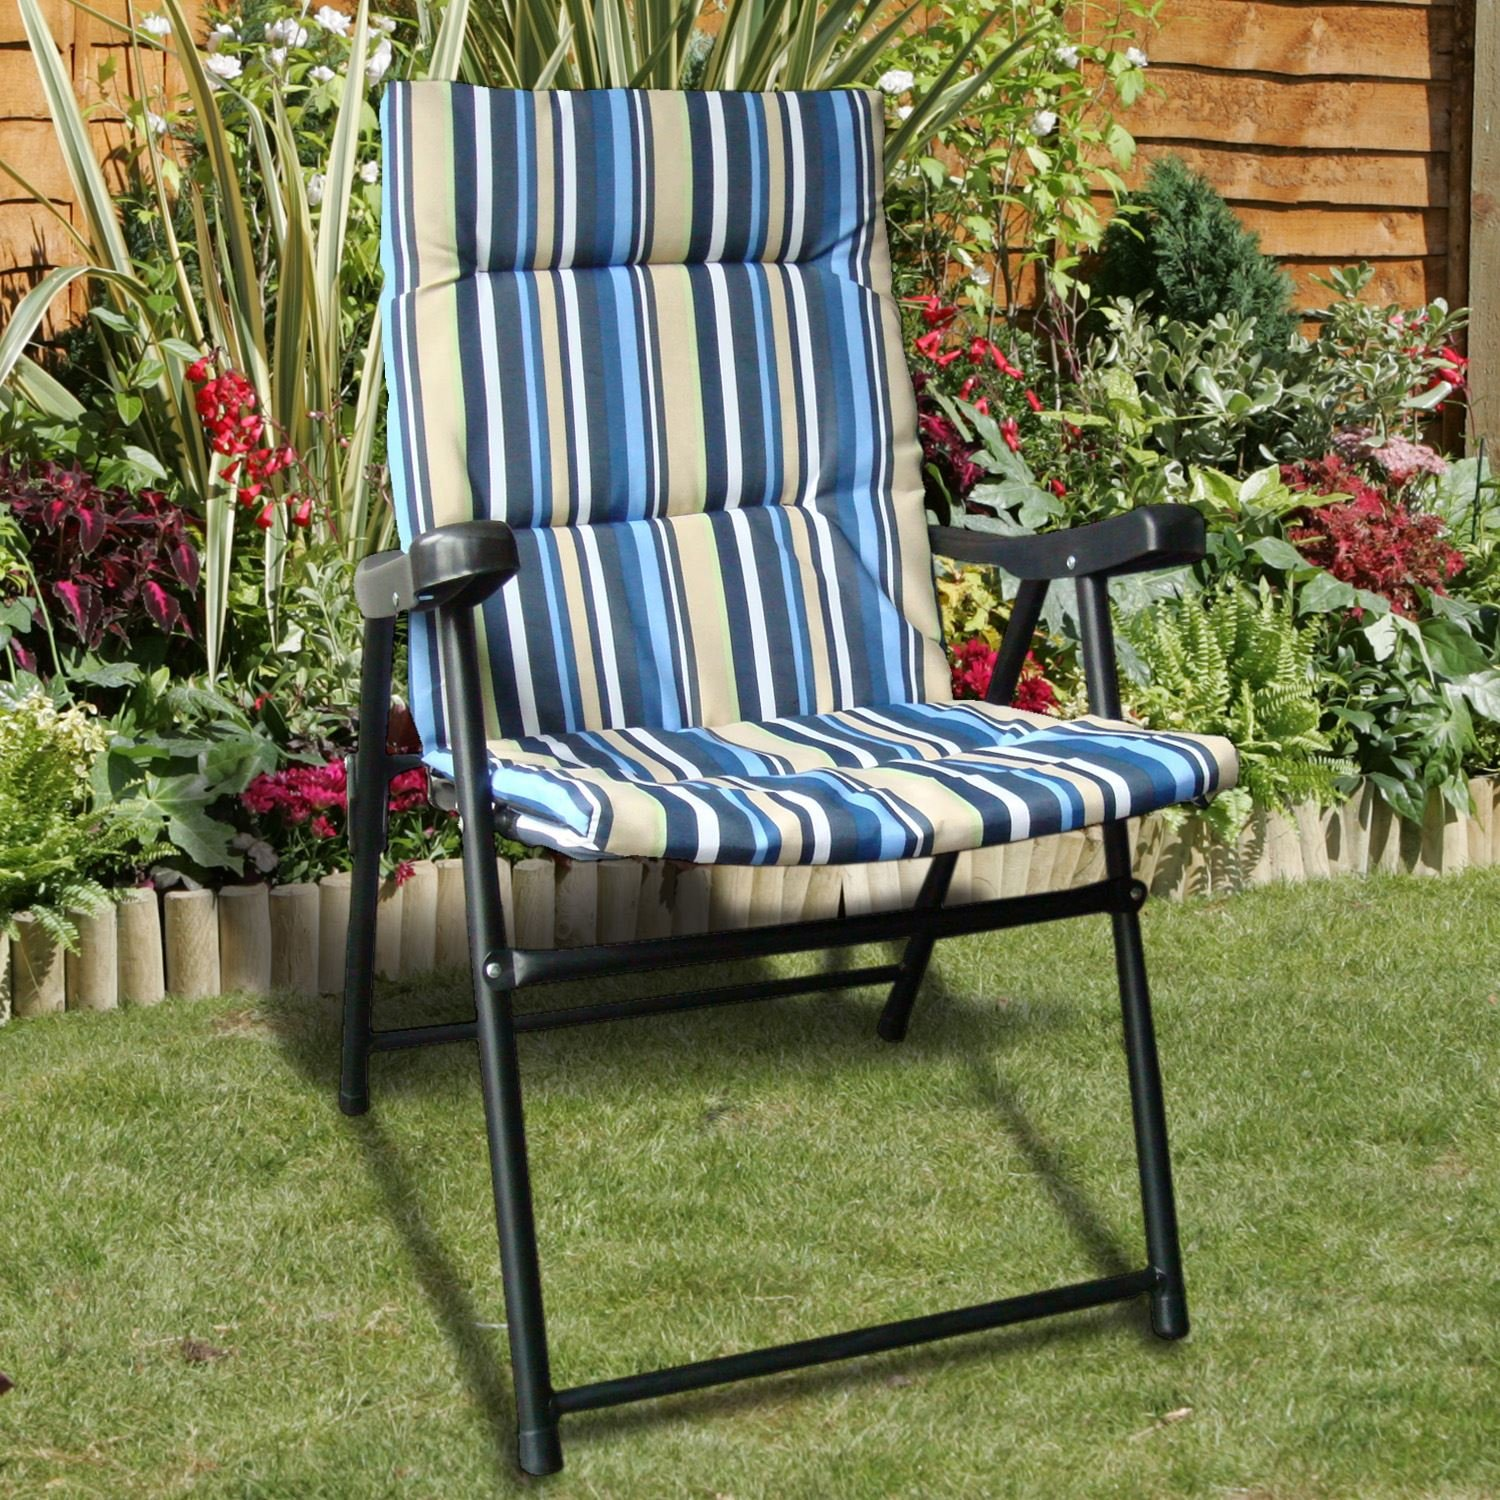 Padded Folding Chair Amazon Garden & Outdoors